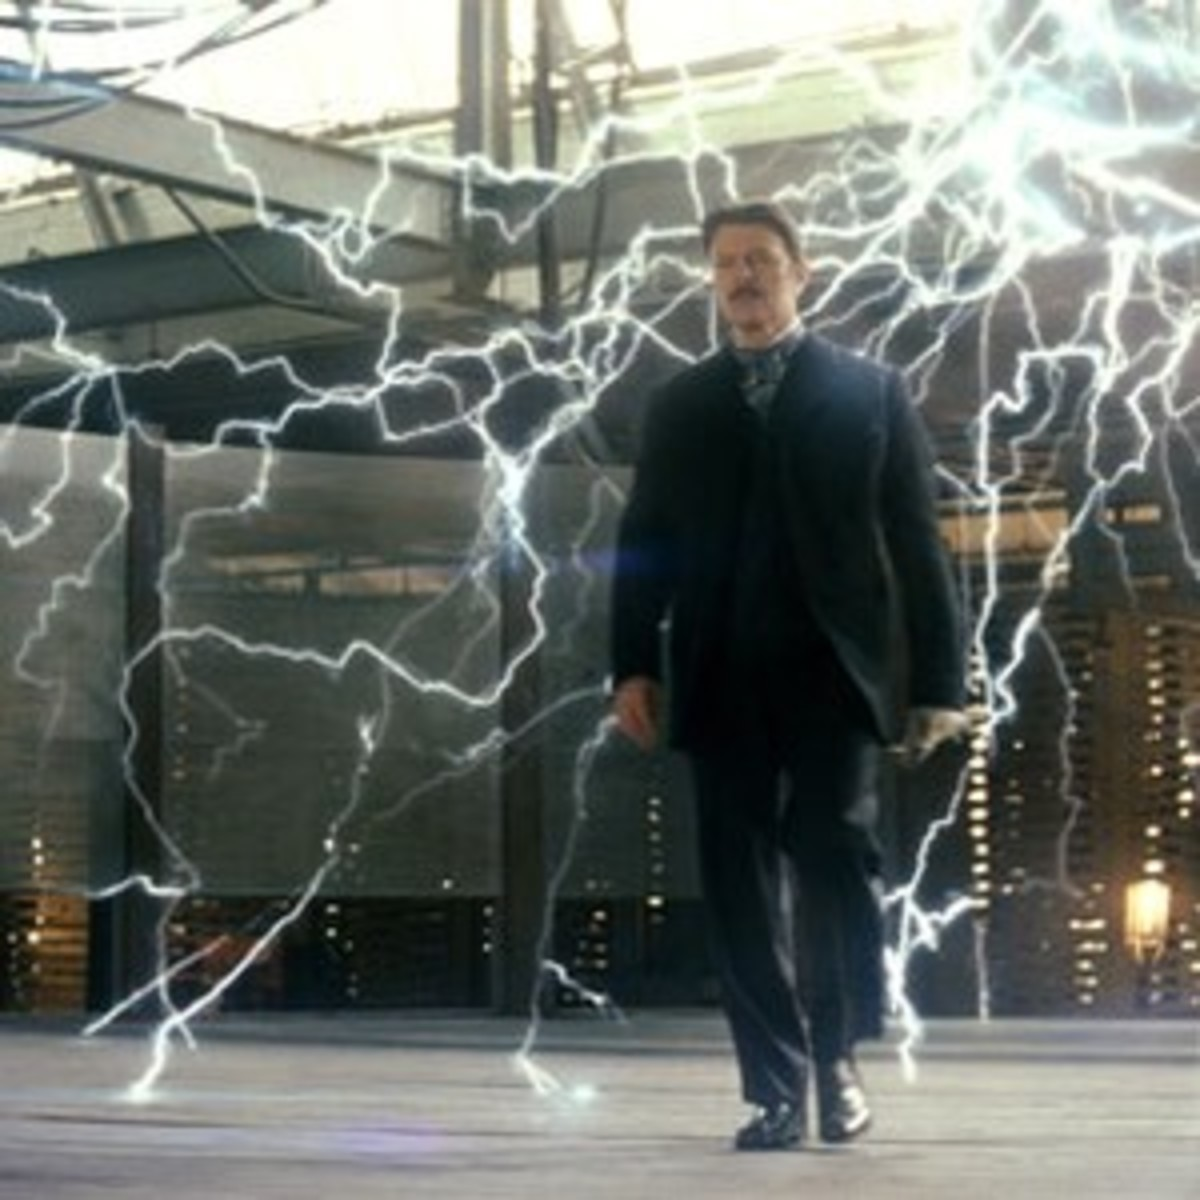 Nikola Tesla in The Prestige.